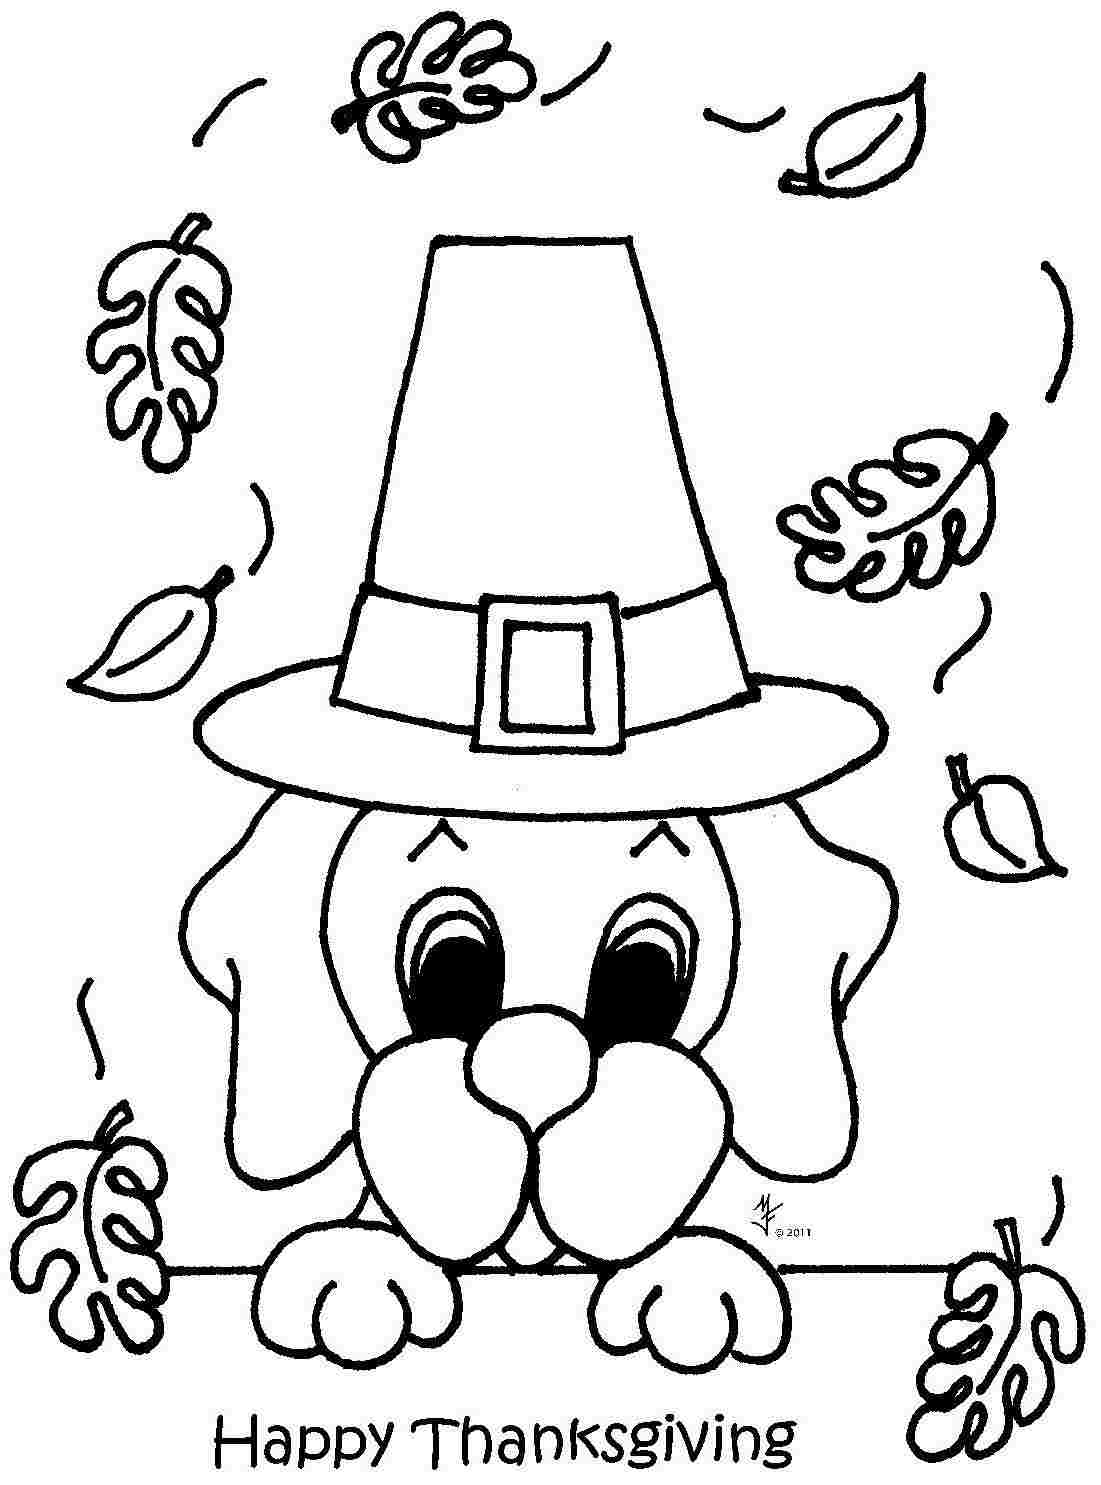 Happy Thanksgiving Drawing At Getdrawings